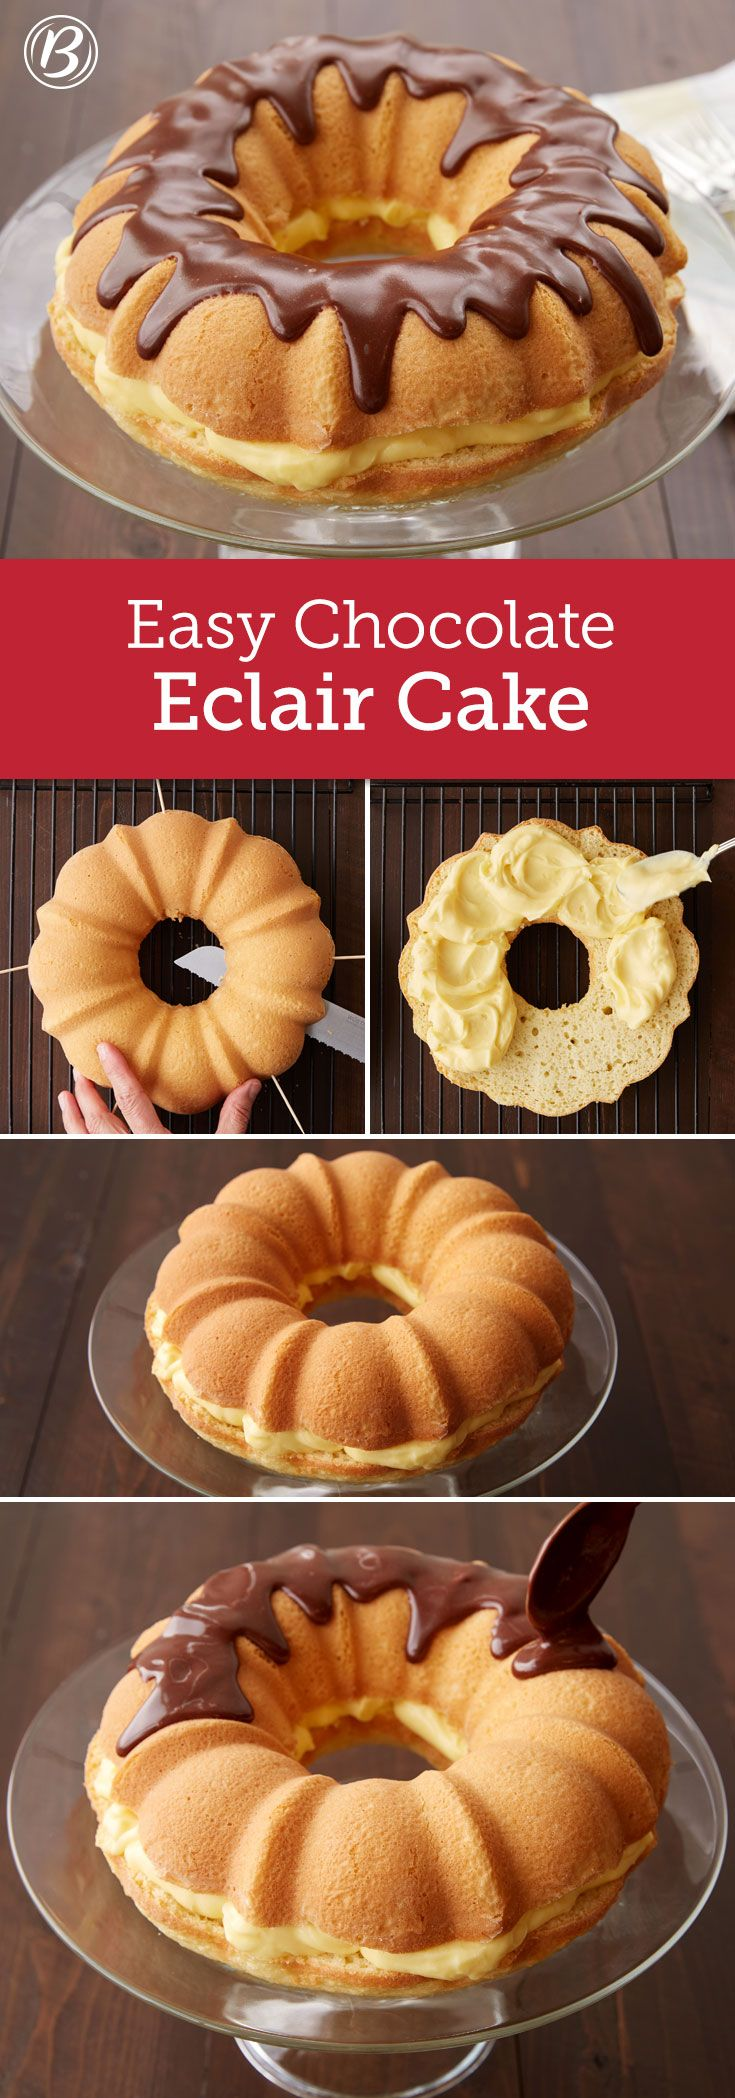 Inspired by the custard-filled, doughnut-shop classic, this impressive Bundt cake is prepped in a flash, thanks to Betty's Krispy Kreme cake mix. You can bake the cake a day ahead; just hold off on adding filling until just before serving.